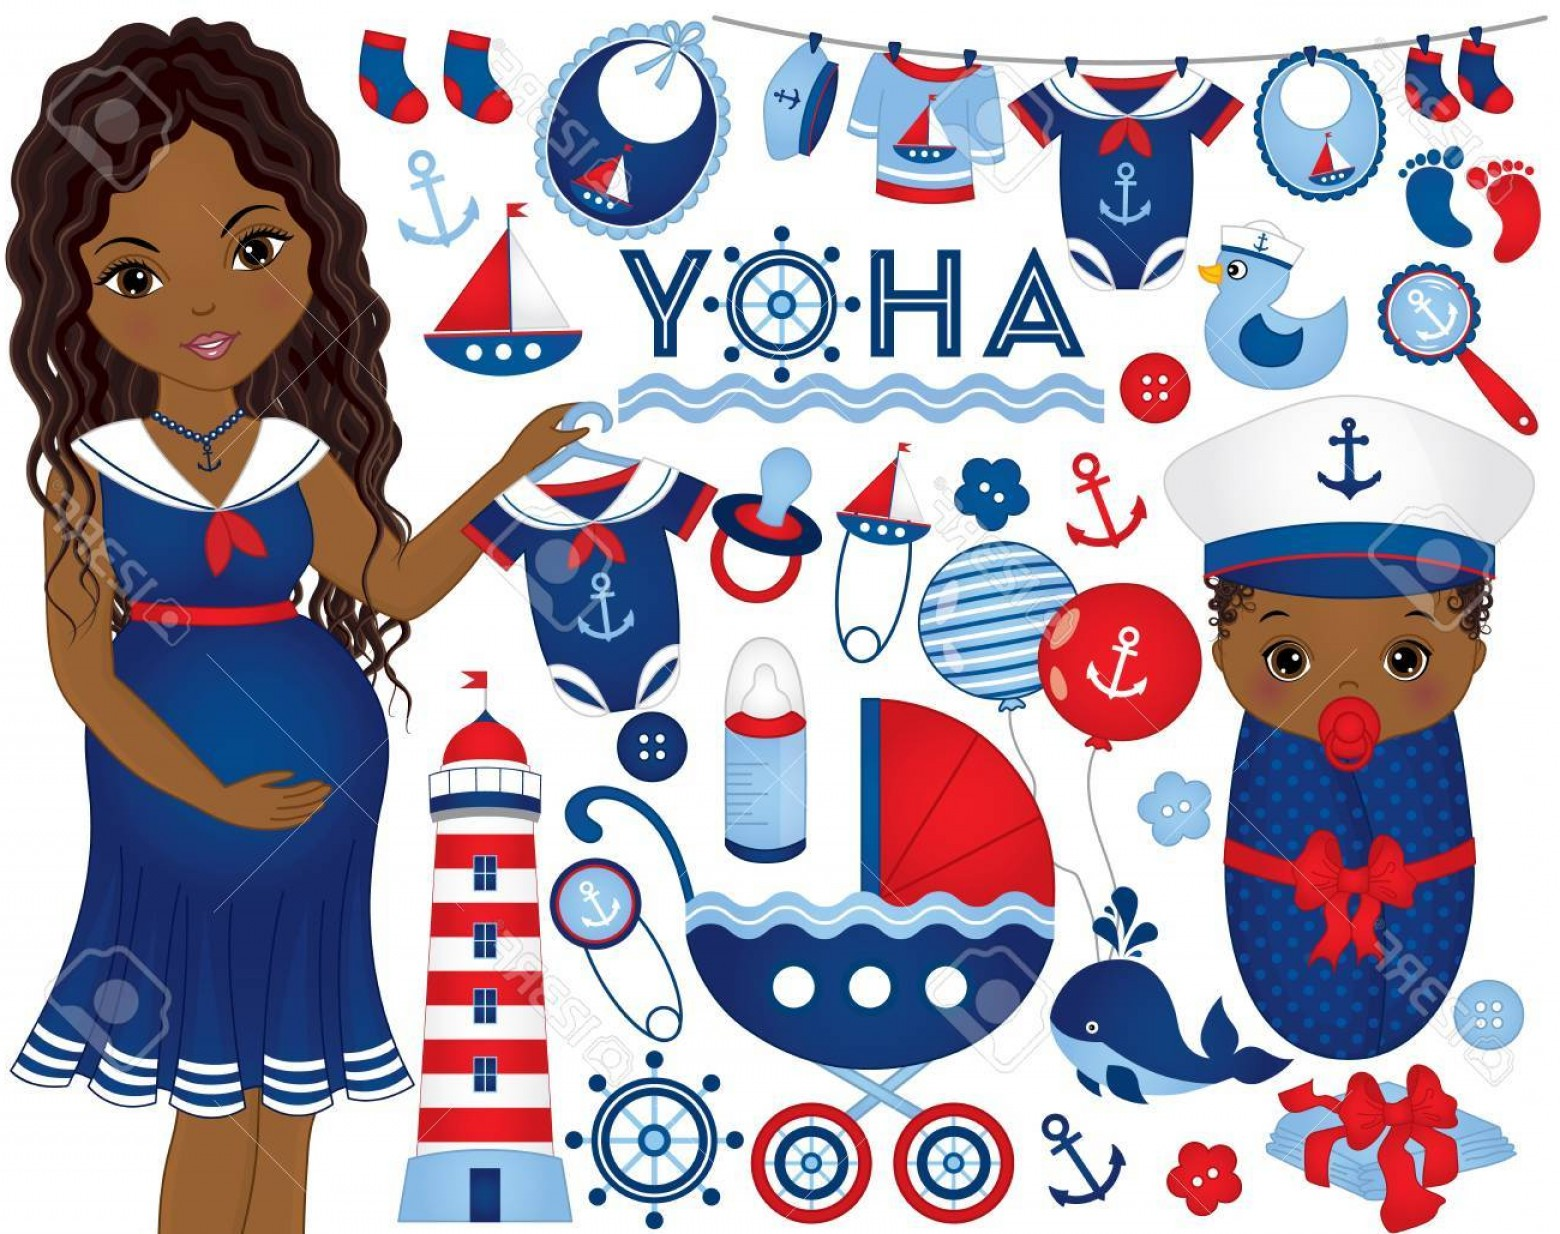 Nautical Vector Art Baby Rattle: Photostock Vector Vector Baby Shower Set In Nautical Style Set Includes African American Pregnant Woman Baby Stroller